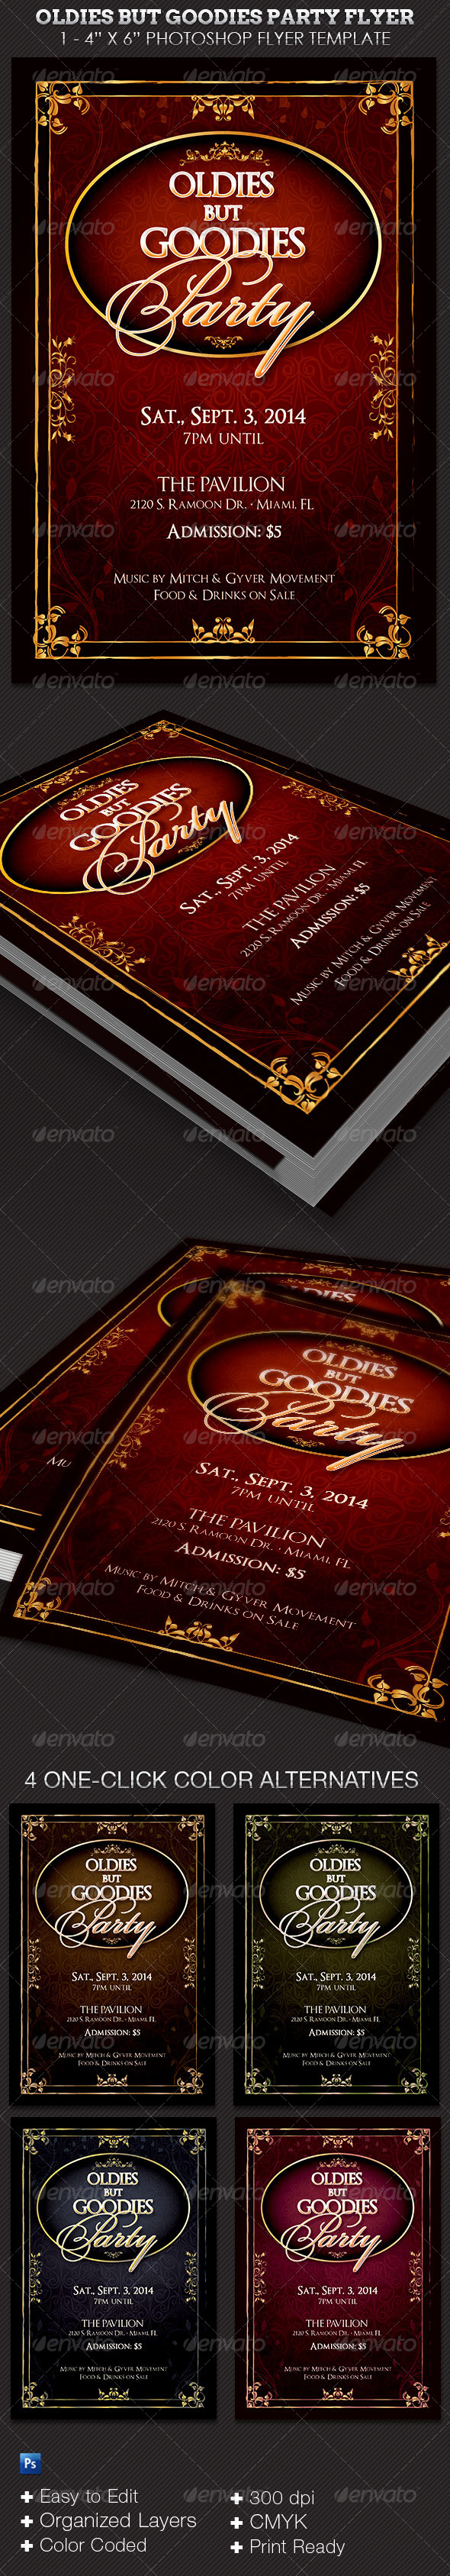 GraphicRiver Oldies but Goodies Party Flyer Template 6573821